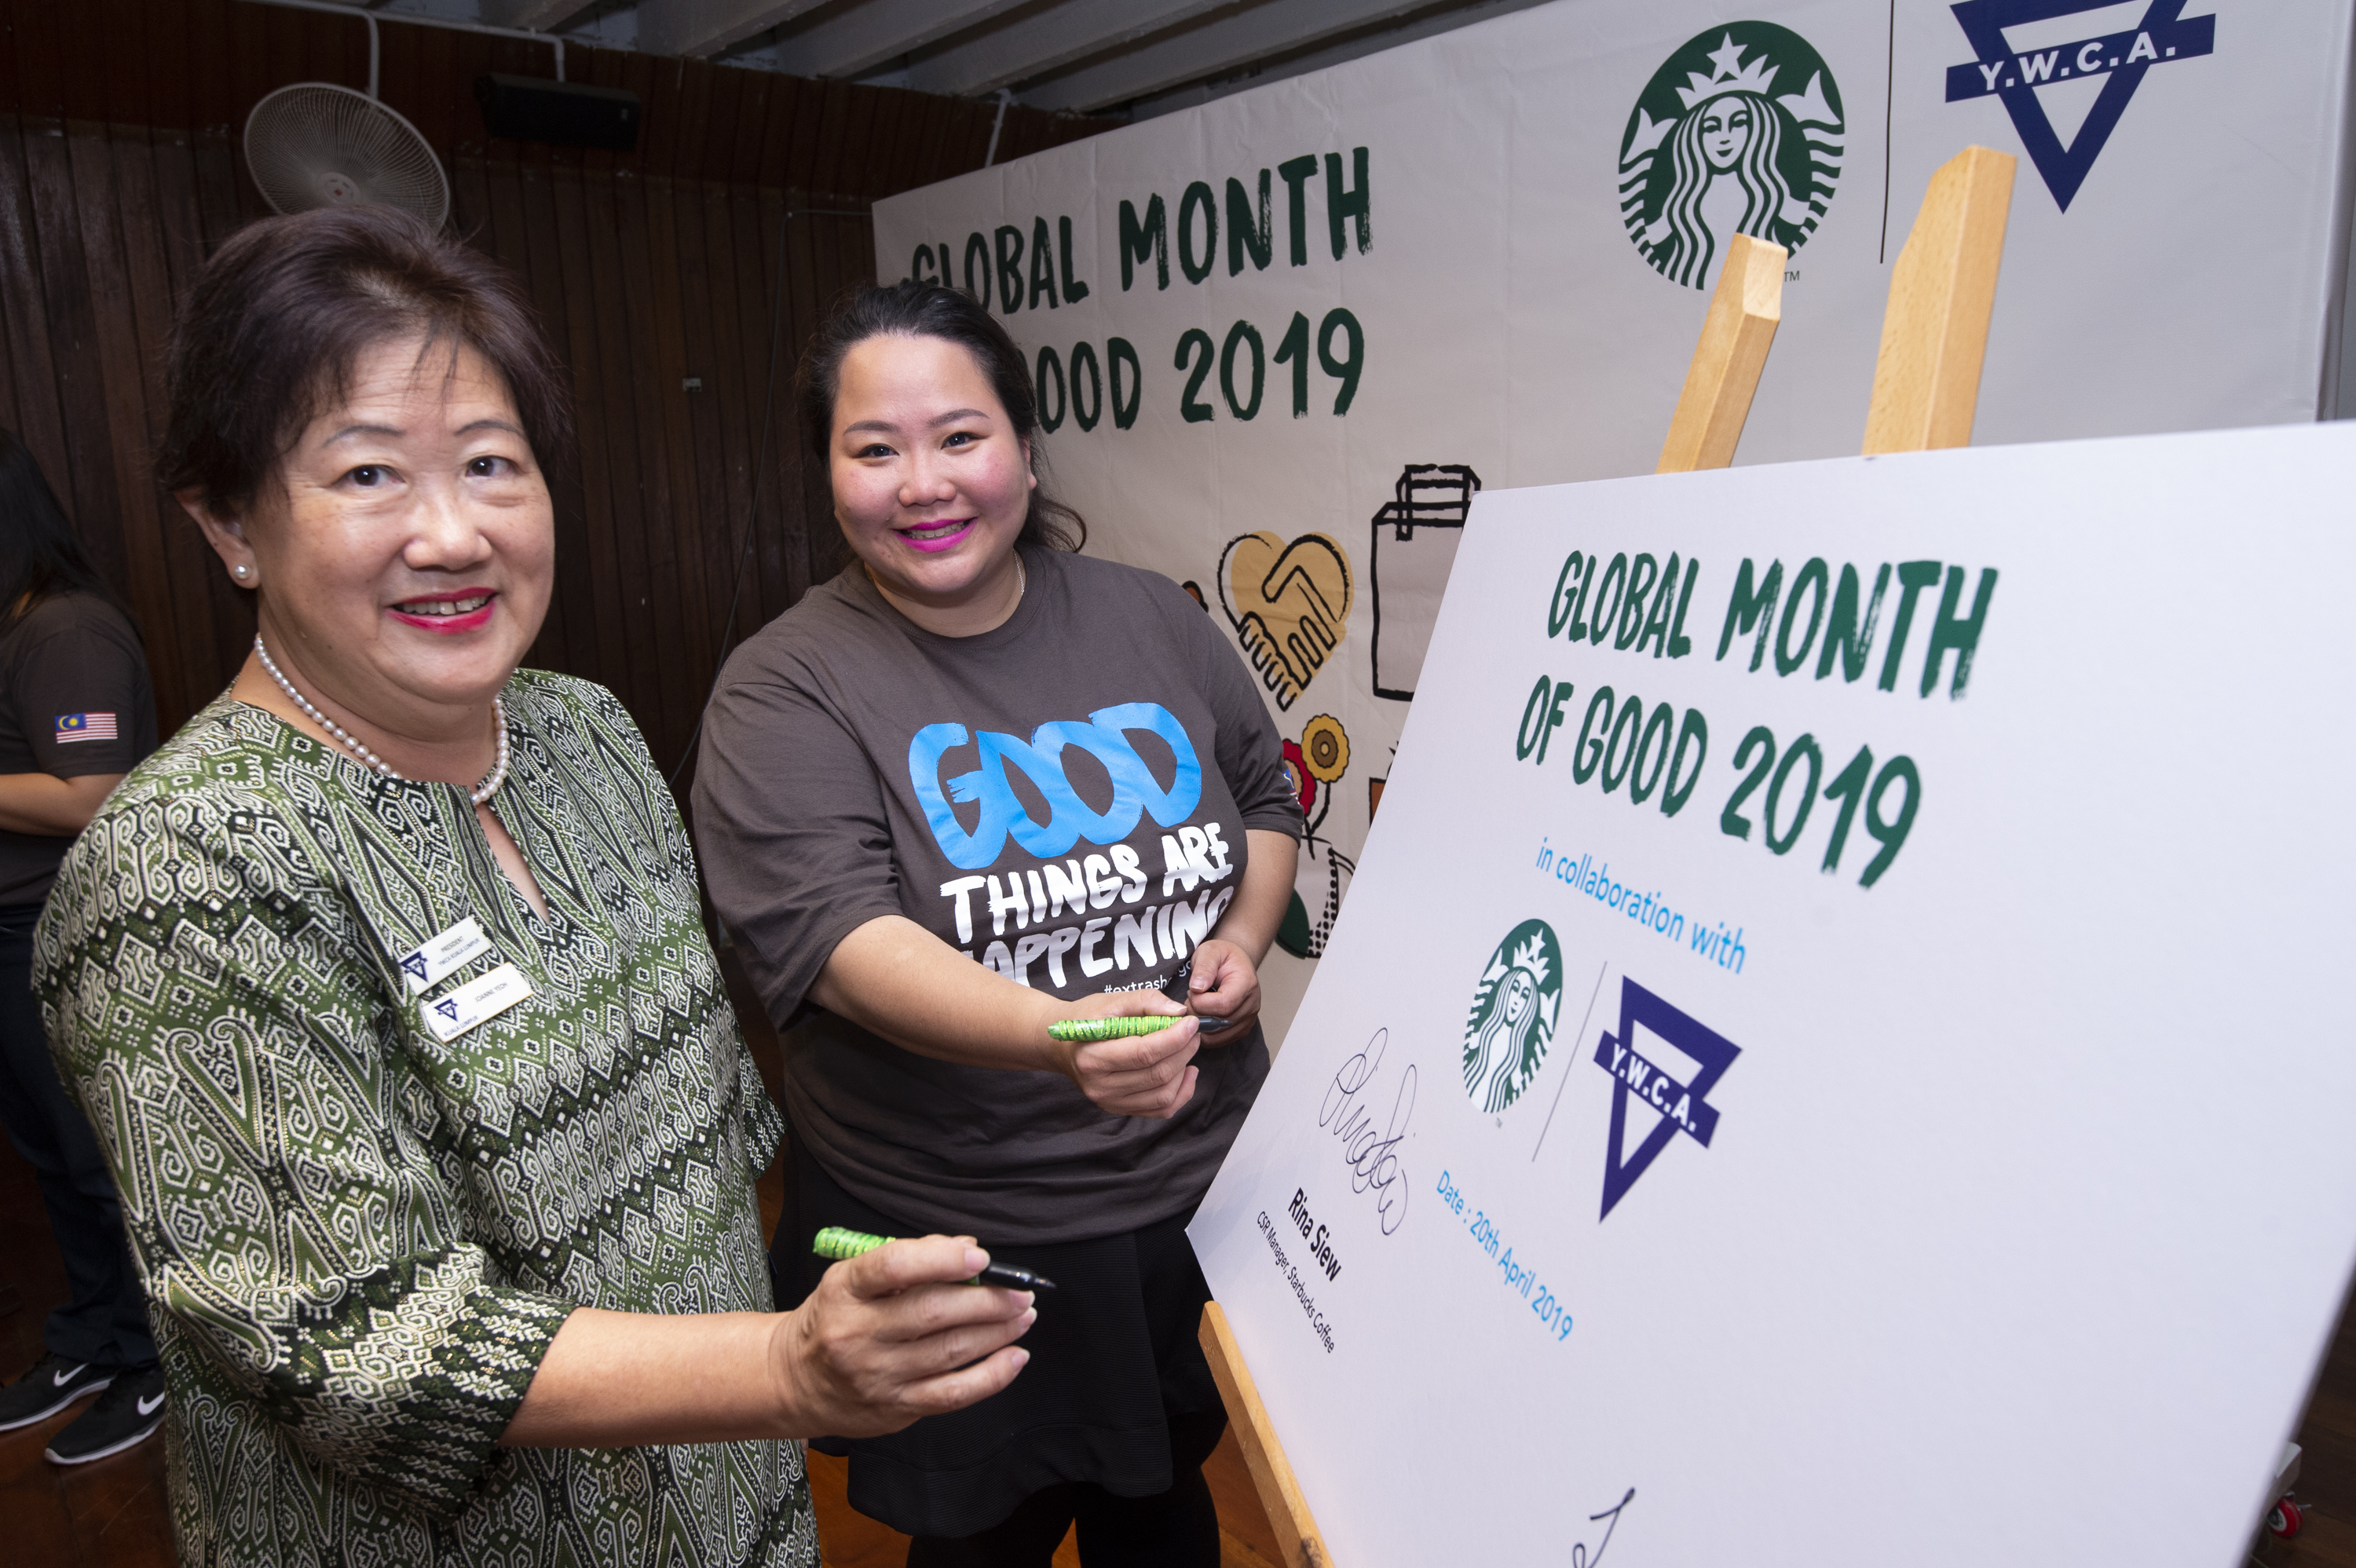 (left) Joanne Yeoh, President of the Young Women's Christian Association (YWCA) Kuala Lumpur and (right) Rina Siew, Corporate Social Responsibility Manager of Starbucks Malaysia and Brunei officiating the Starbucks Global Month of Good 2019 event